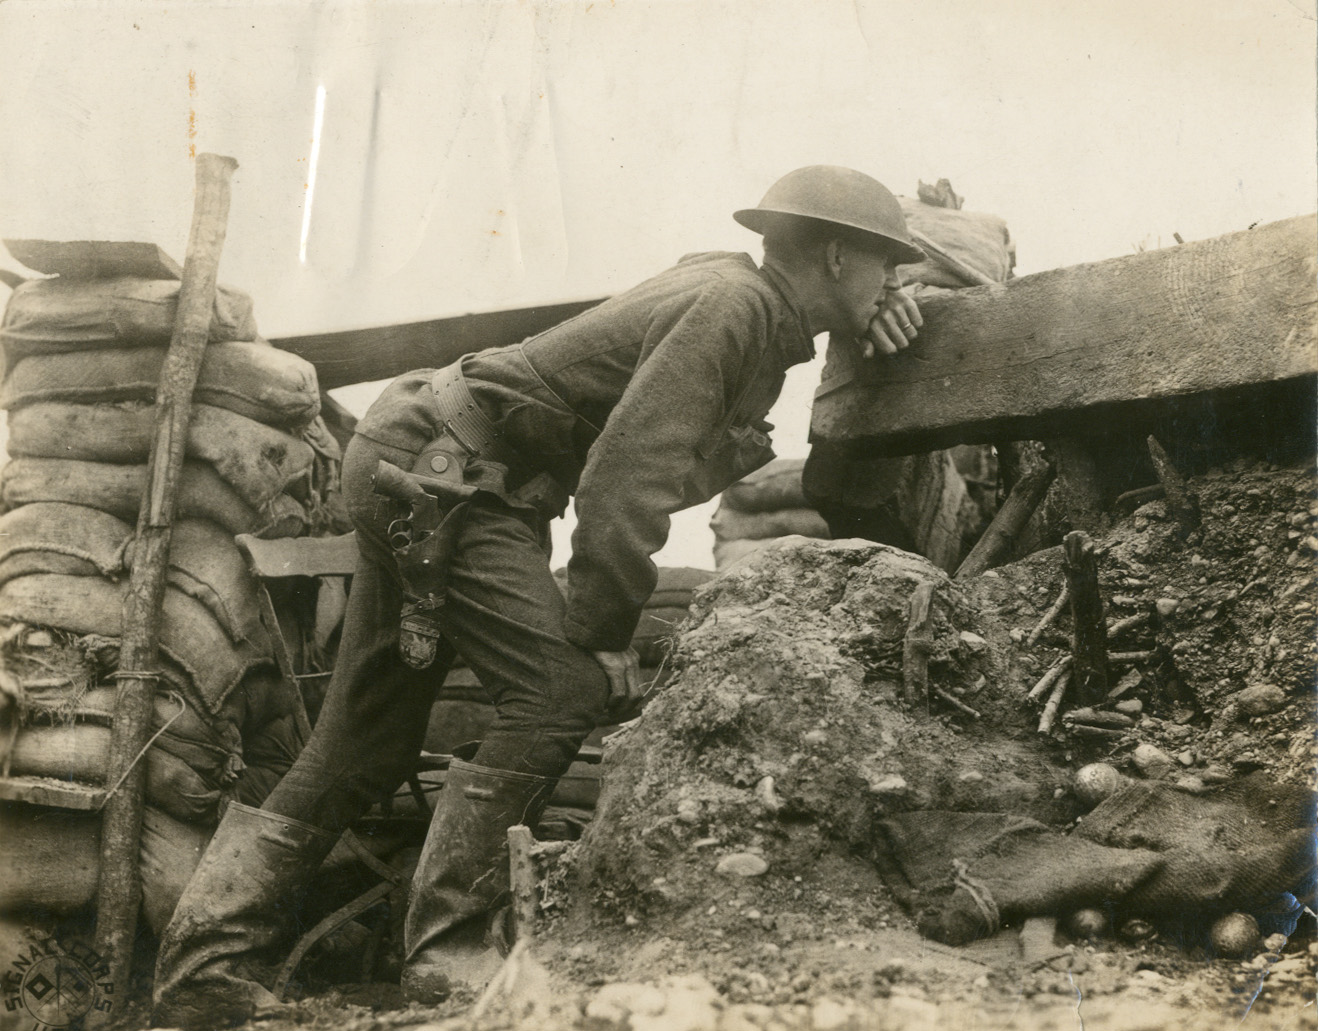 32nd division soldier in a trench